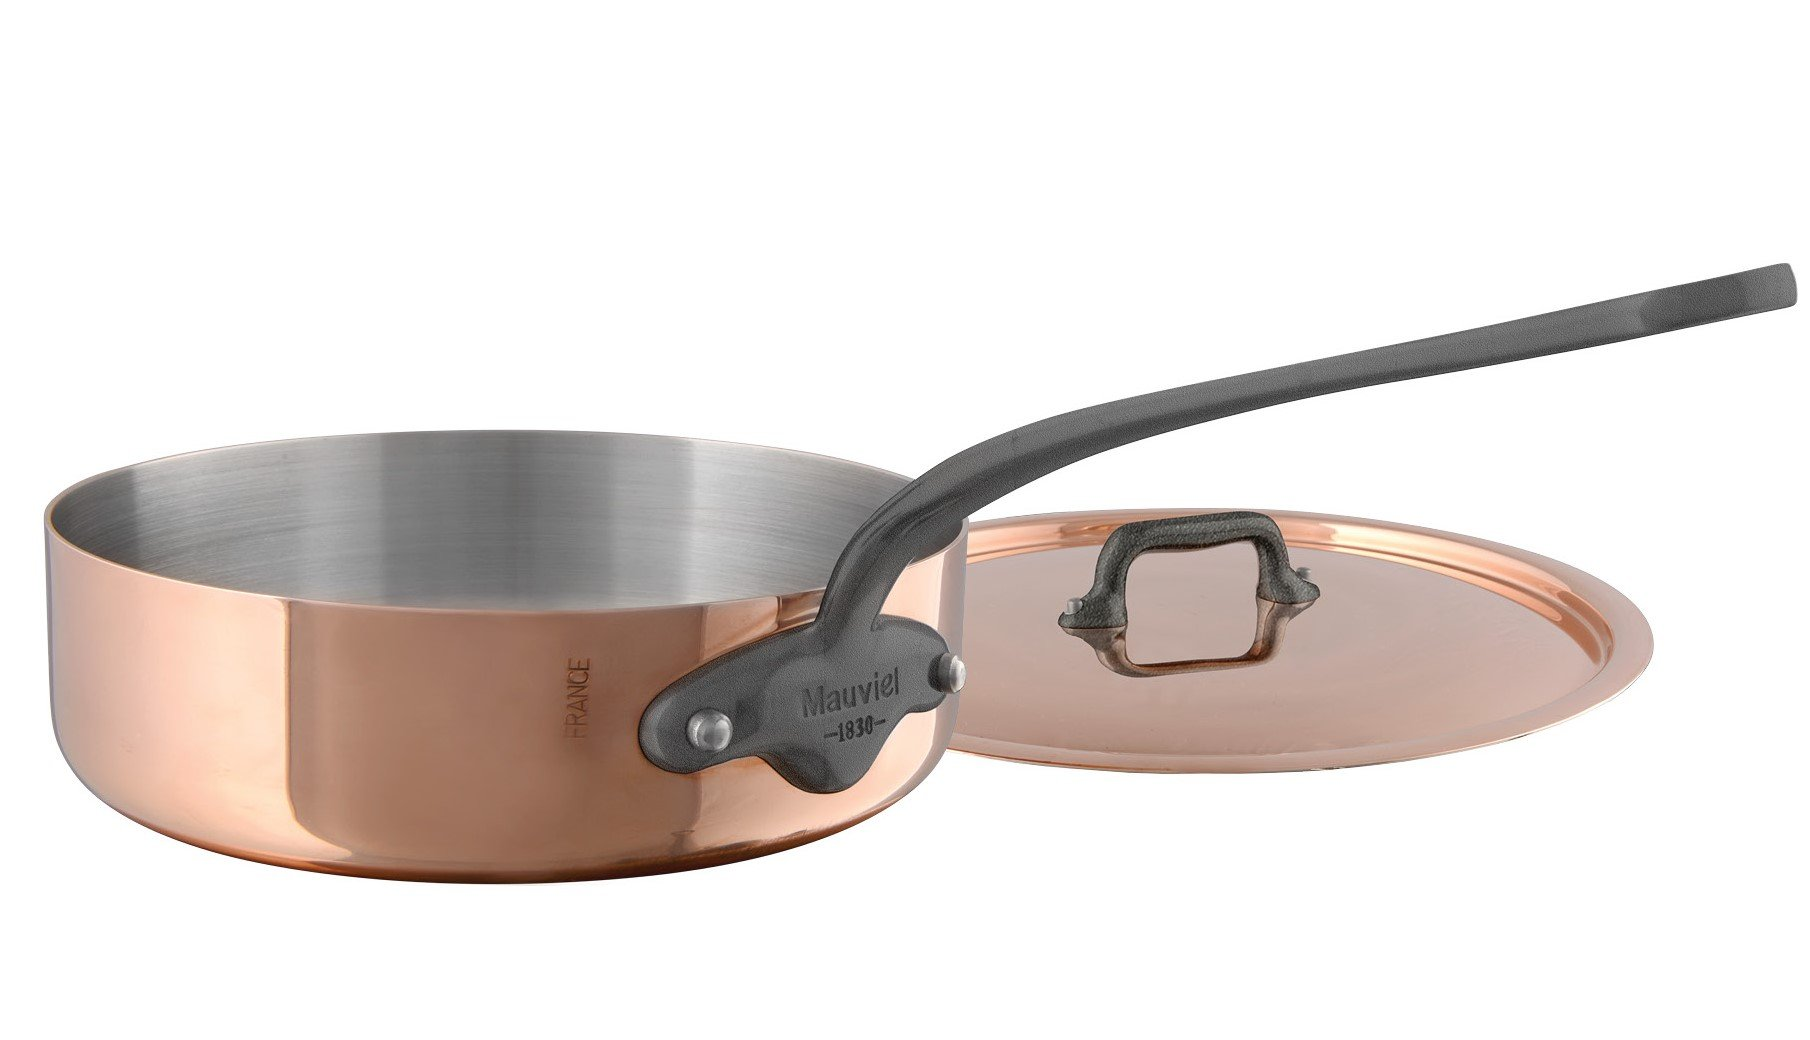 Mauviel M'Heritage M150C 6451.25 Copper Saute Pan with Lid. 3L/3.5 quart 24 cm./9.5'' with Cast Stainless Steel Iron Eletroplated  Handle